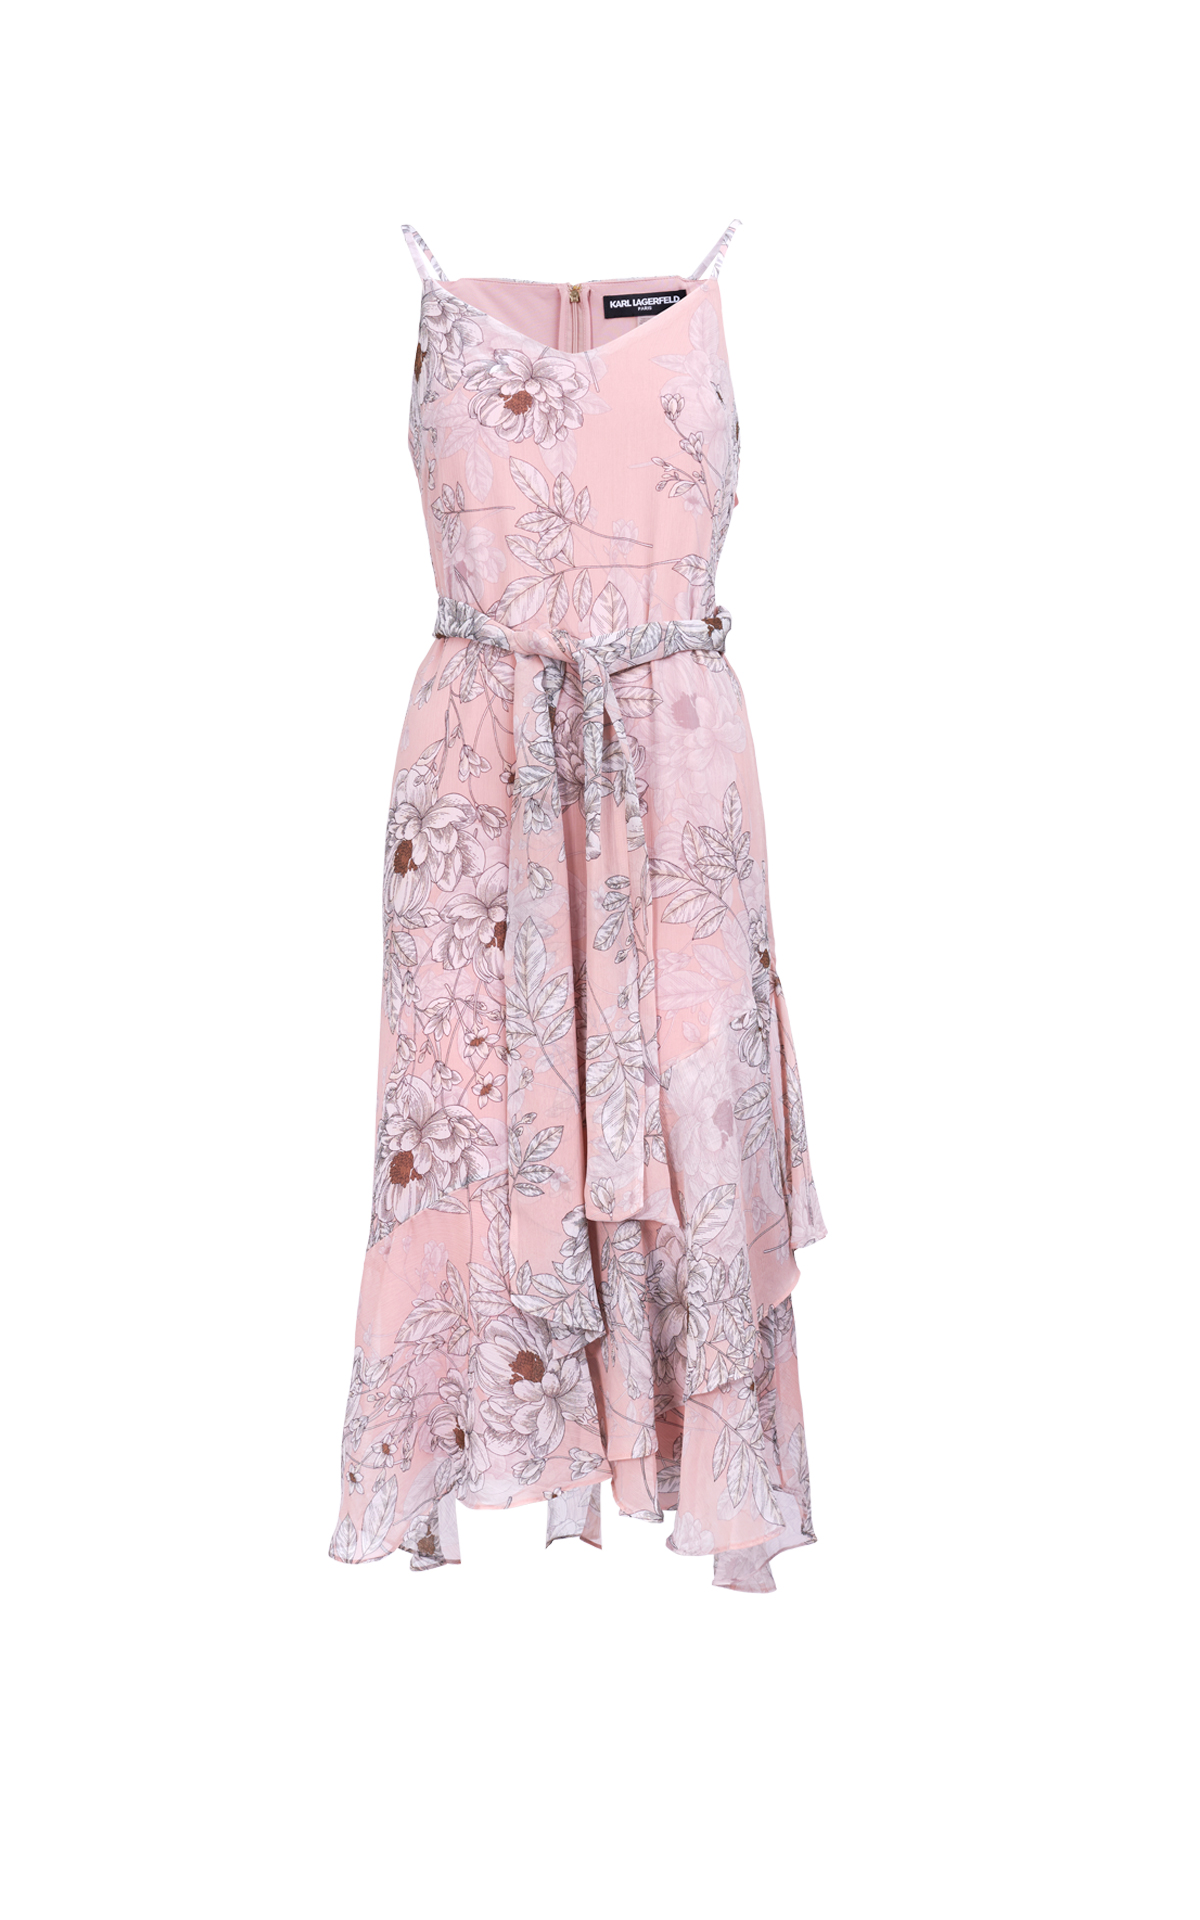 Pink flowered dress Karl lagerfeld